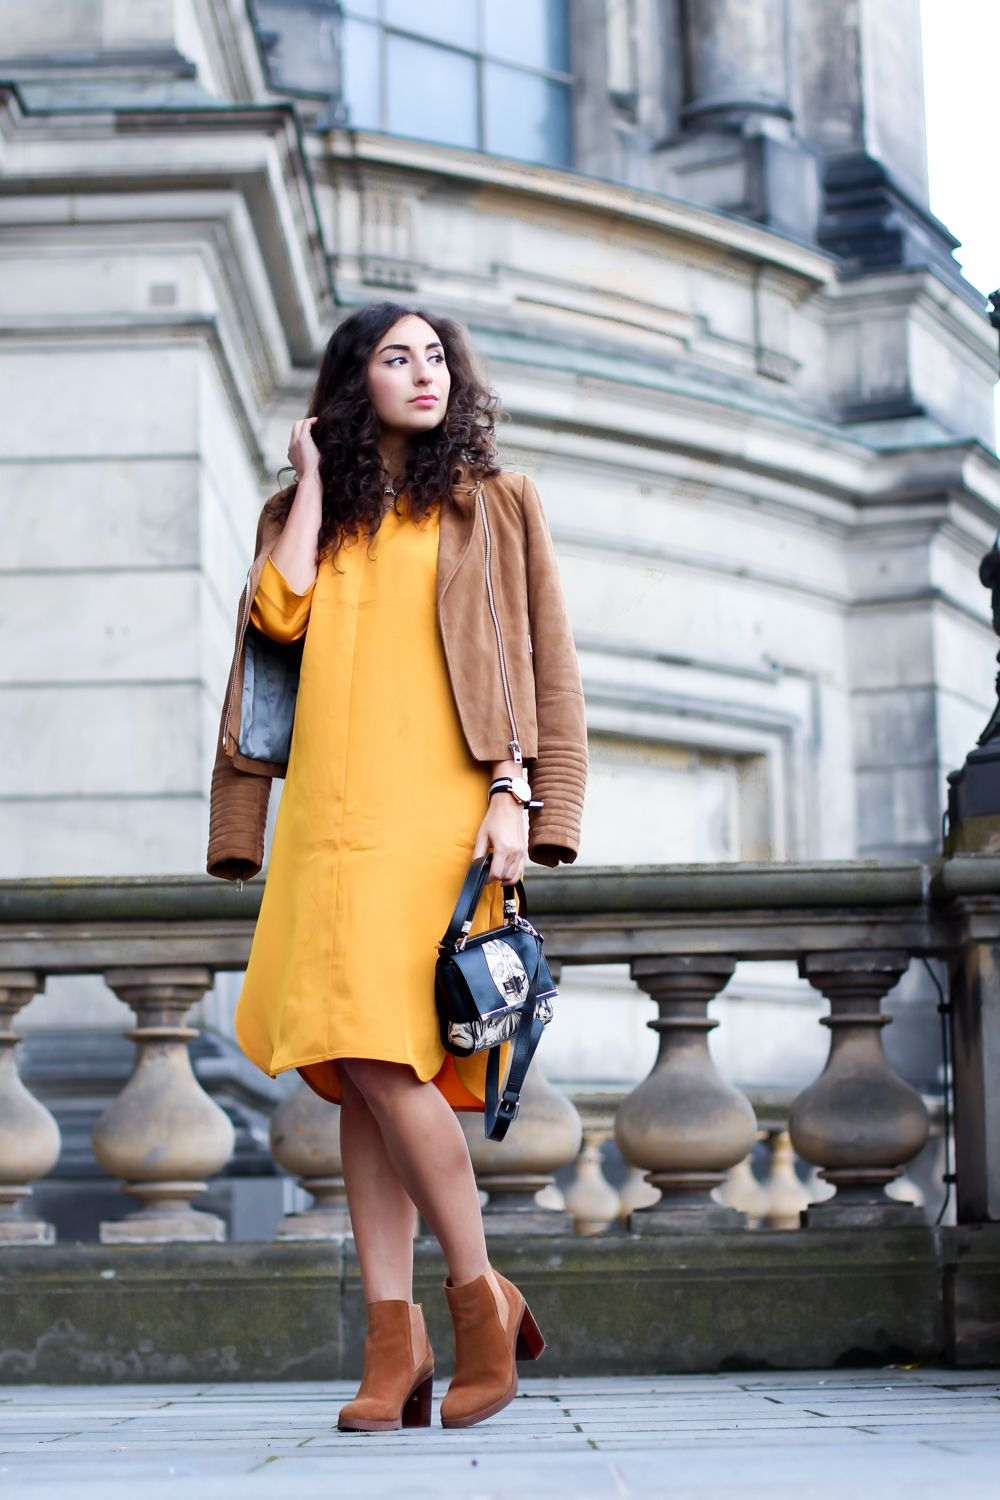 Yellow Midi Dress - Modeblog Berlin  Gelbes midikleid, Outfit